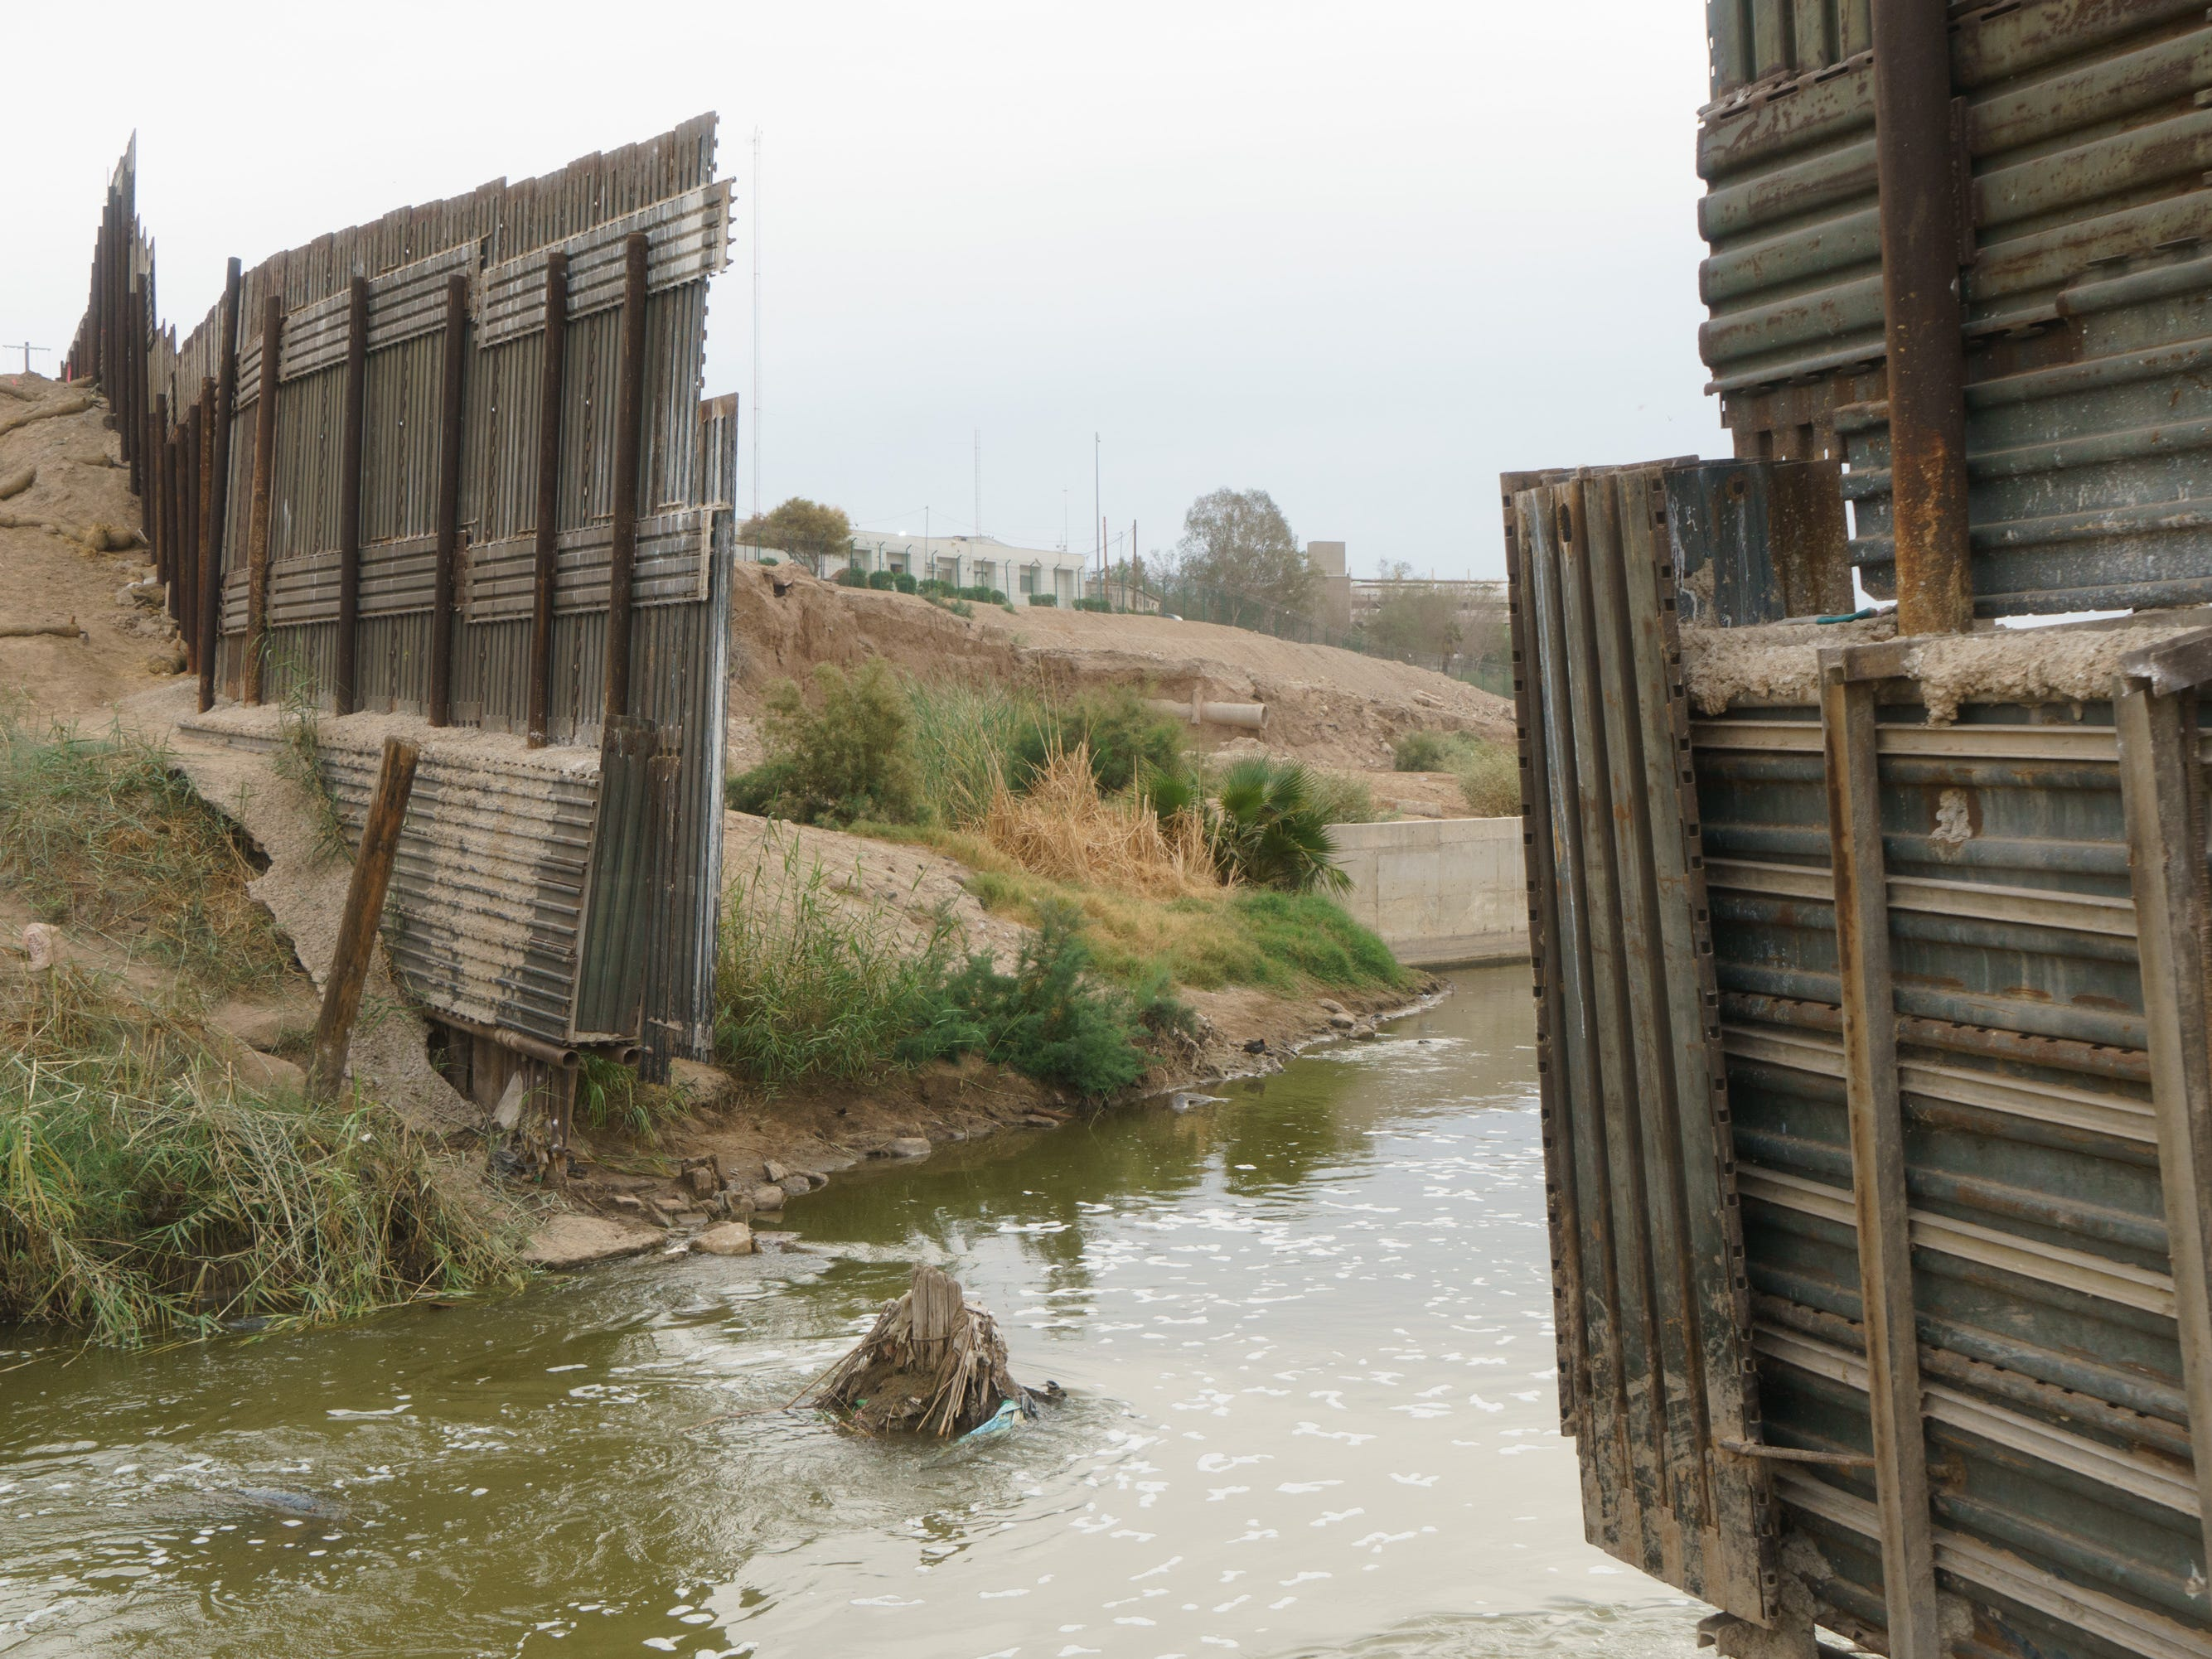 The New River flows across the border into California. This section of the border fence was recently removed and replaced with a new, taller barrier.